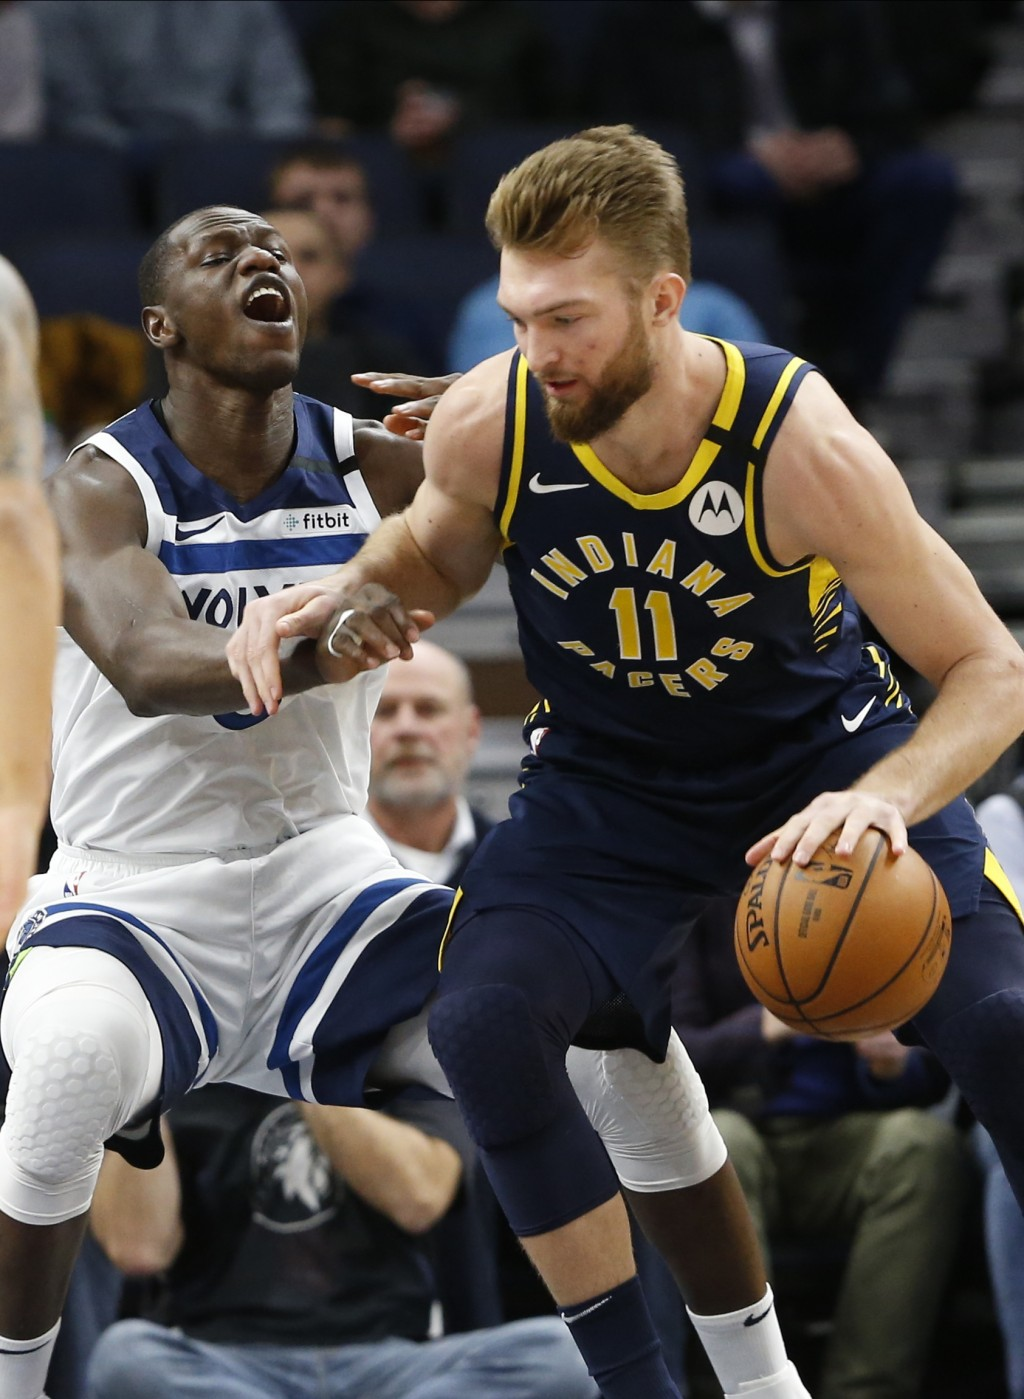 Indiana Pacers' Domantas Sabonis, right, of Lithuania, drives around Minnesota Timberwolves' Gorgui Dieng of Senegal in the first half of an NBA baske...